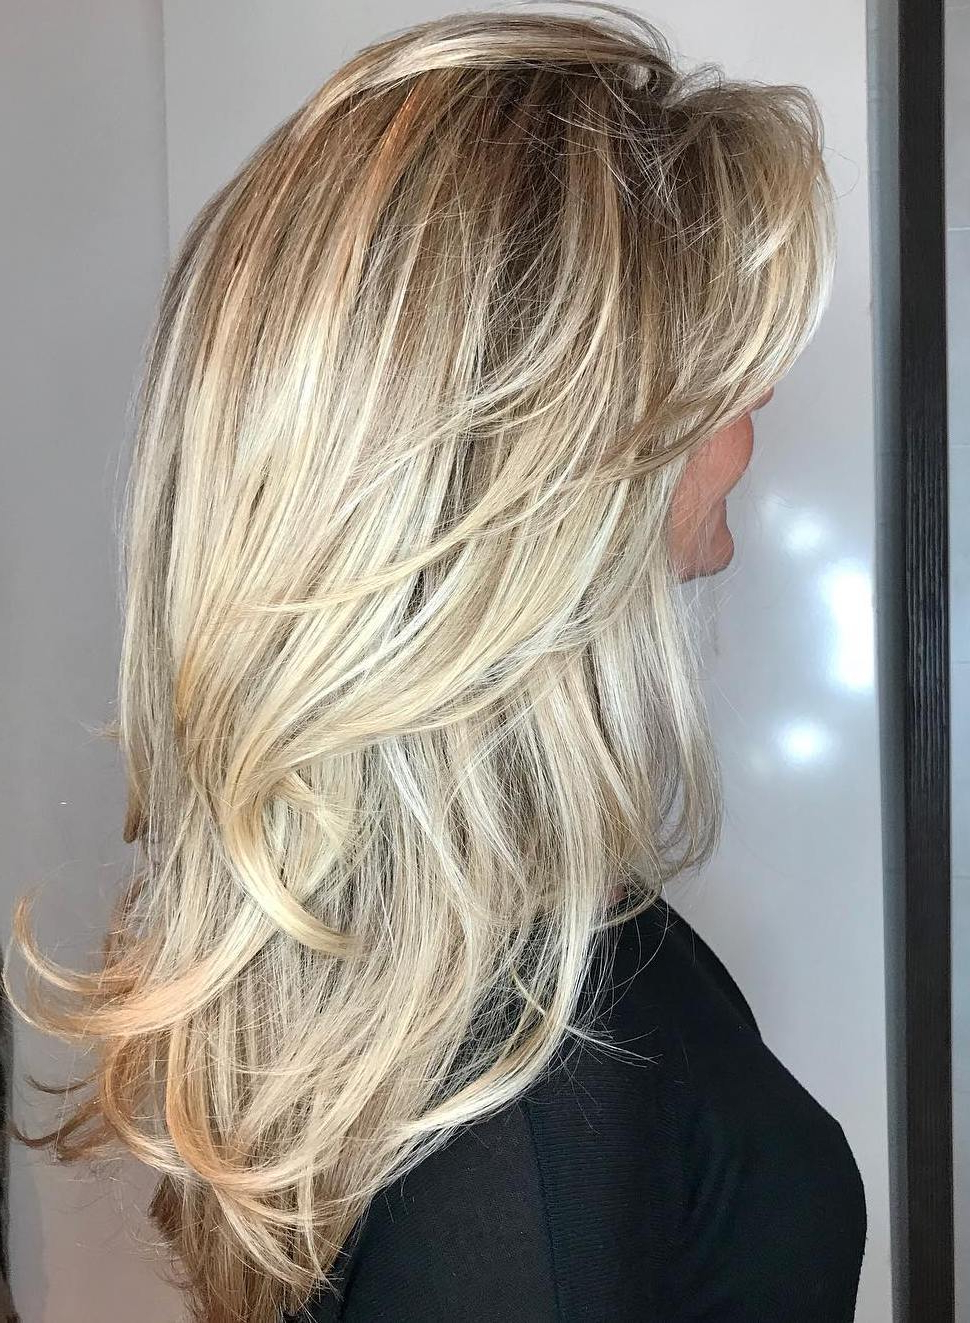 50 Cute Long Layered Haircuts With Bangs 2019 Regarding Most Recent Classy Layers For U Shaped Haircuts (View 5 of 20)